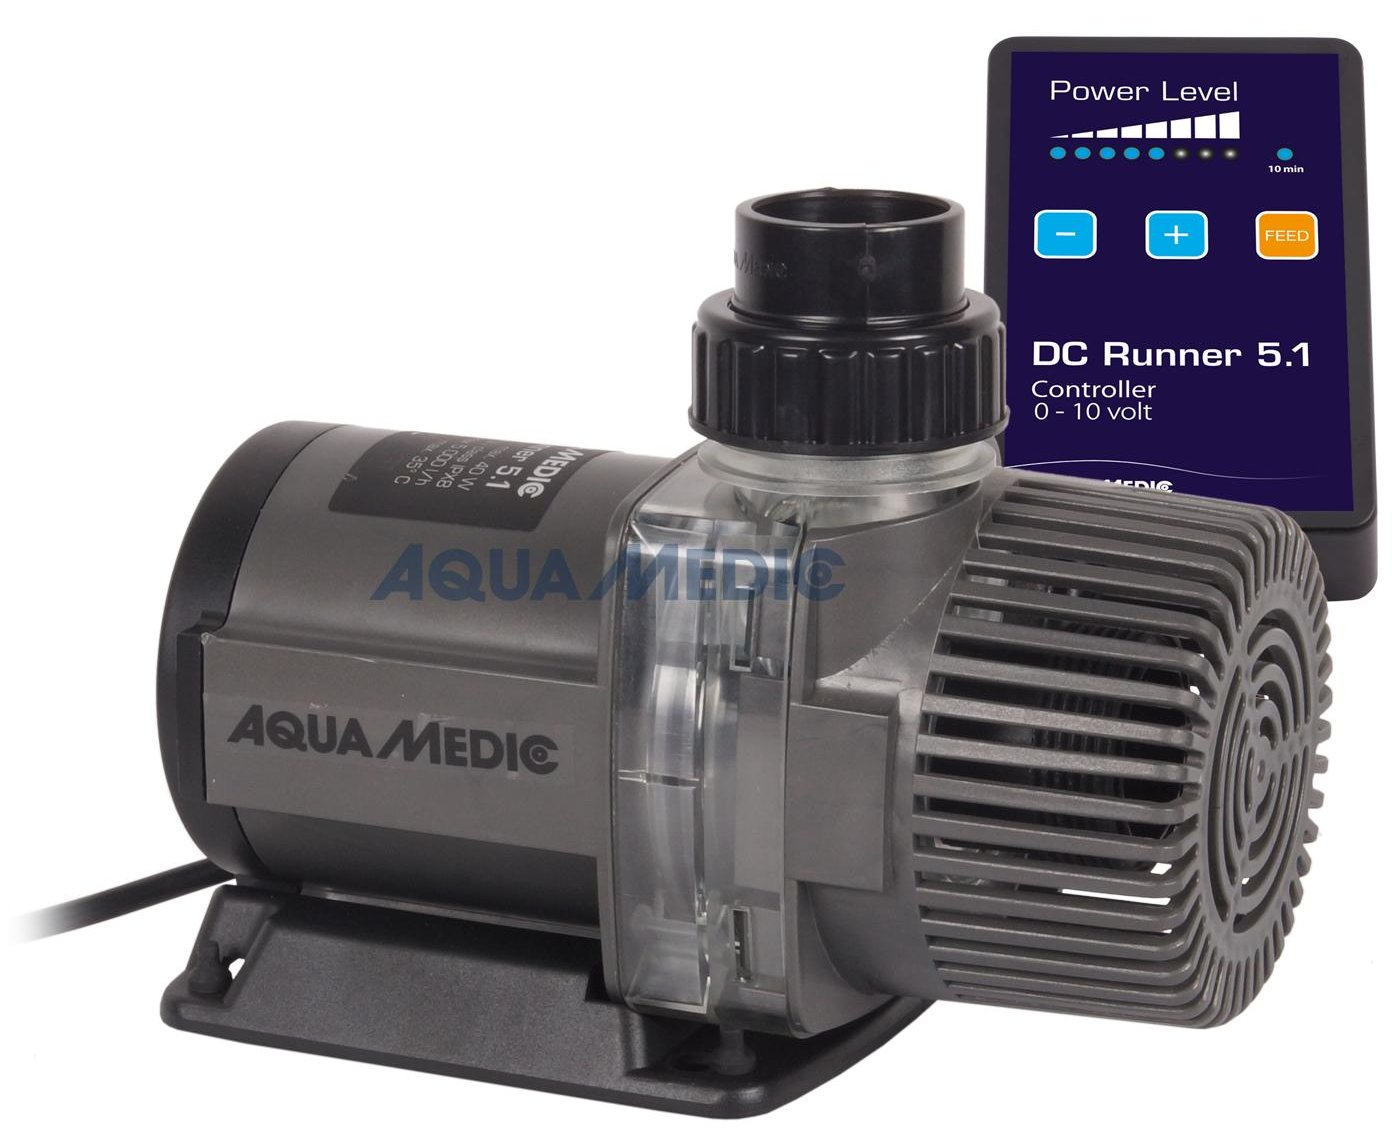 Shop Aqua Medic DC Runner 3.1